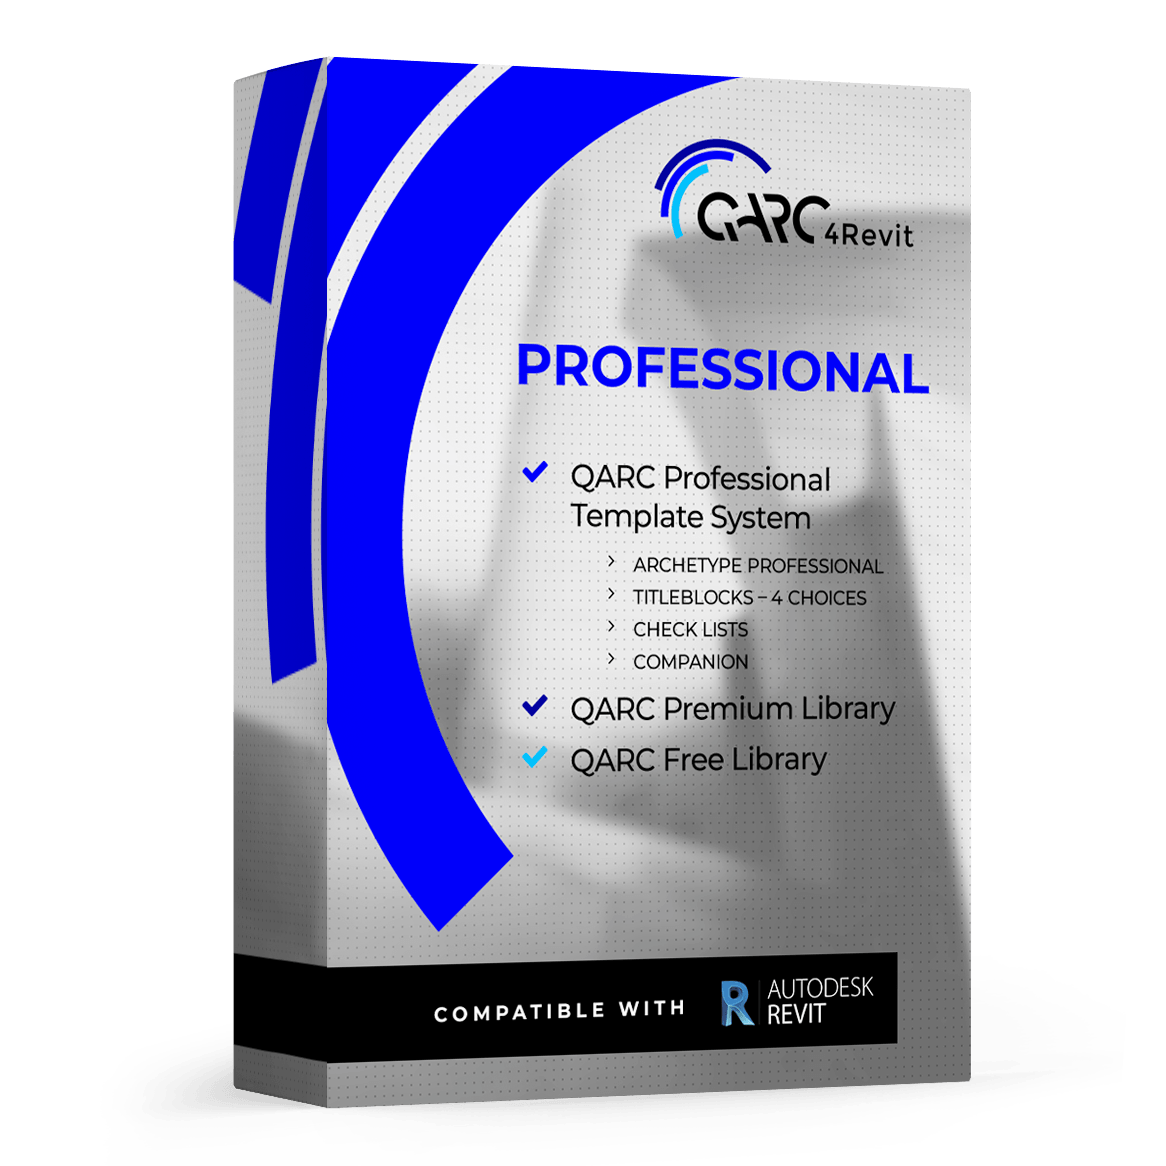 QARC-Product-box-Professional